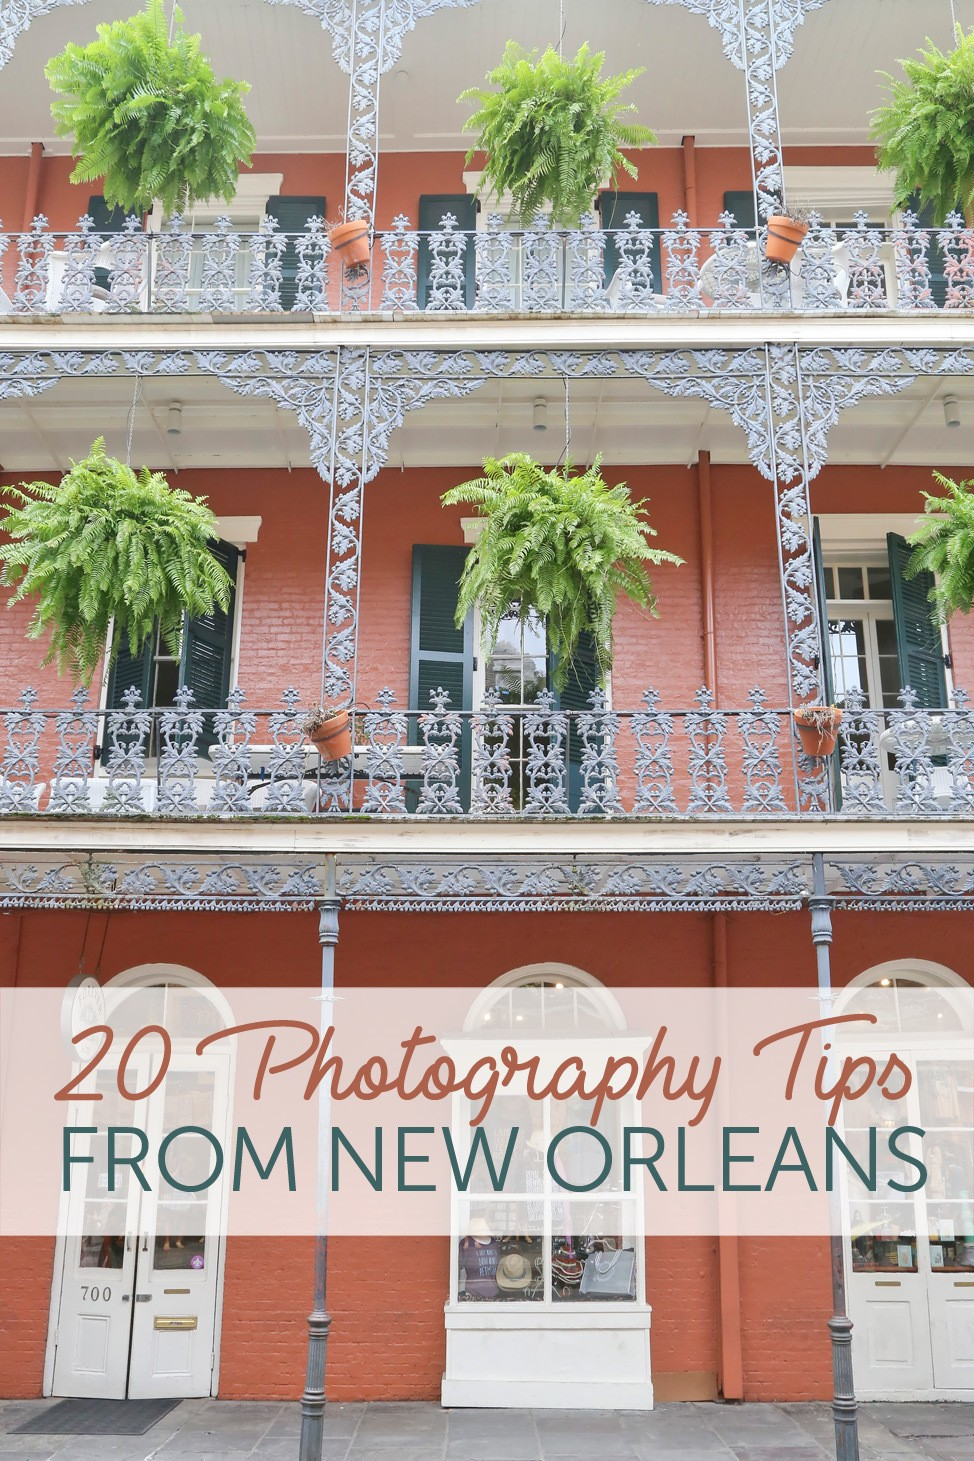 Take Better Travel Photos! Twenty Photography Tips from New Orleans